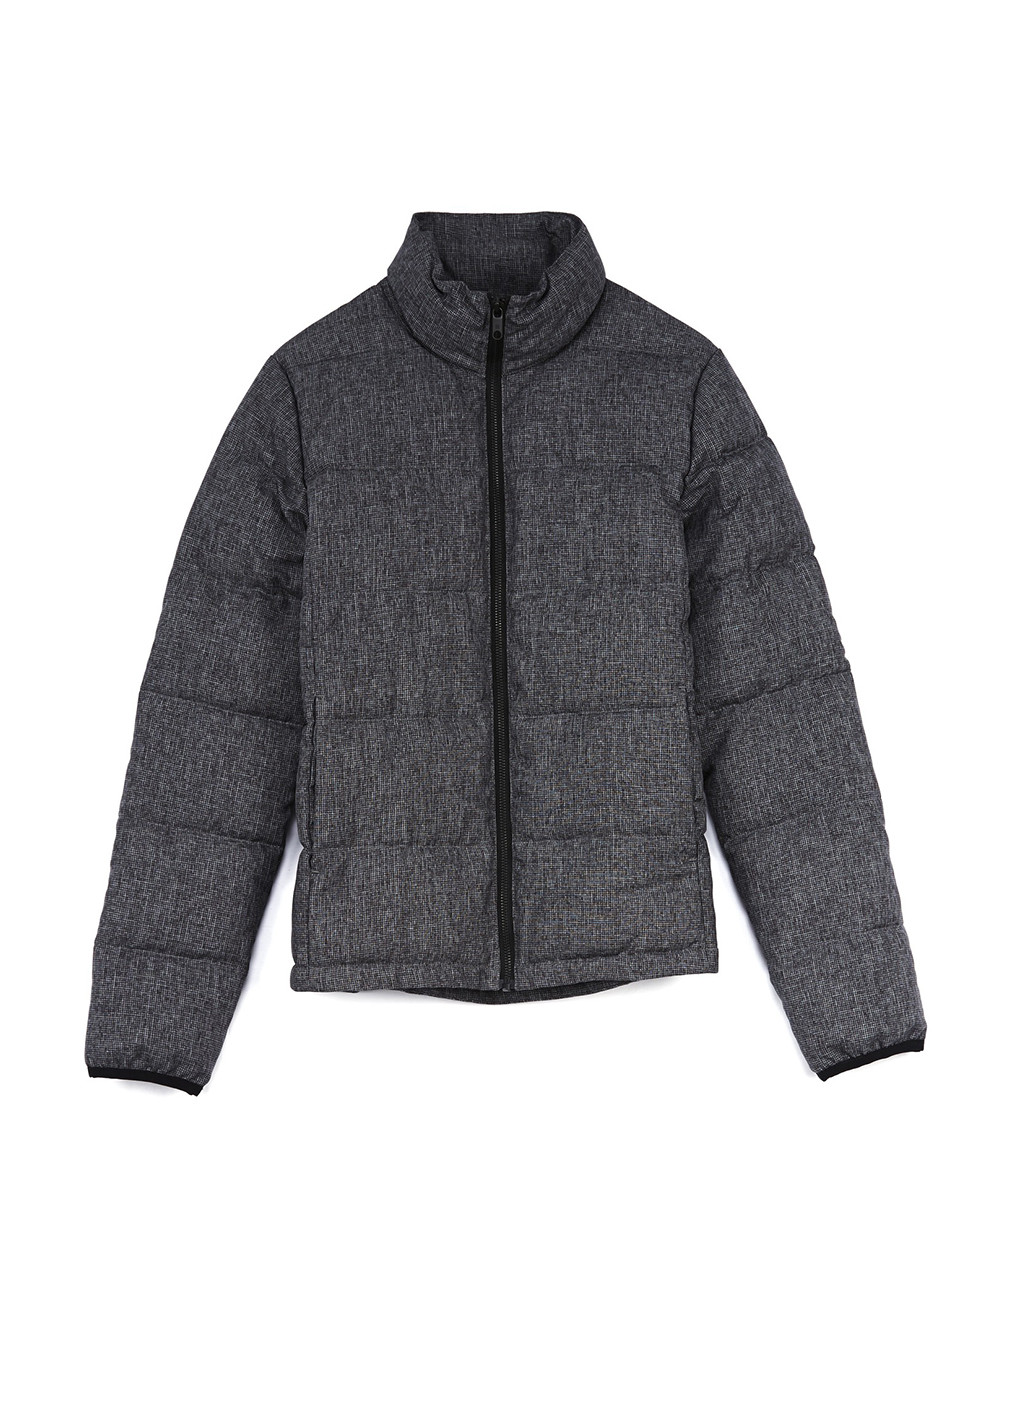 hope-wom-liner-grey-dobby-front